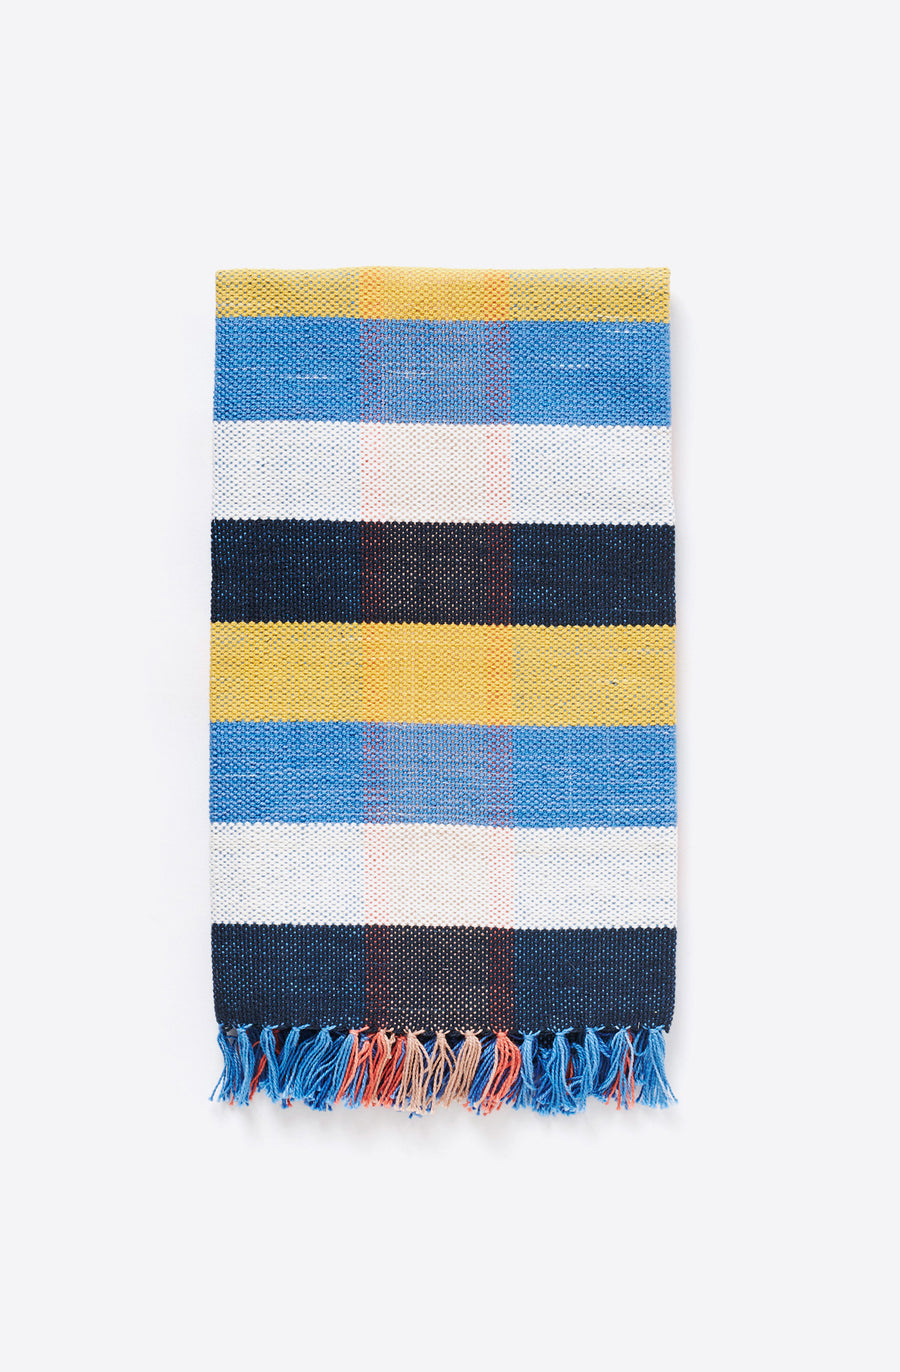 Handwoven Plaid Towel-tomoato plaid